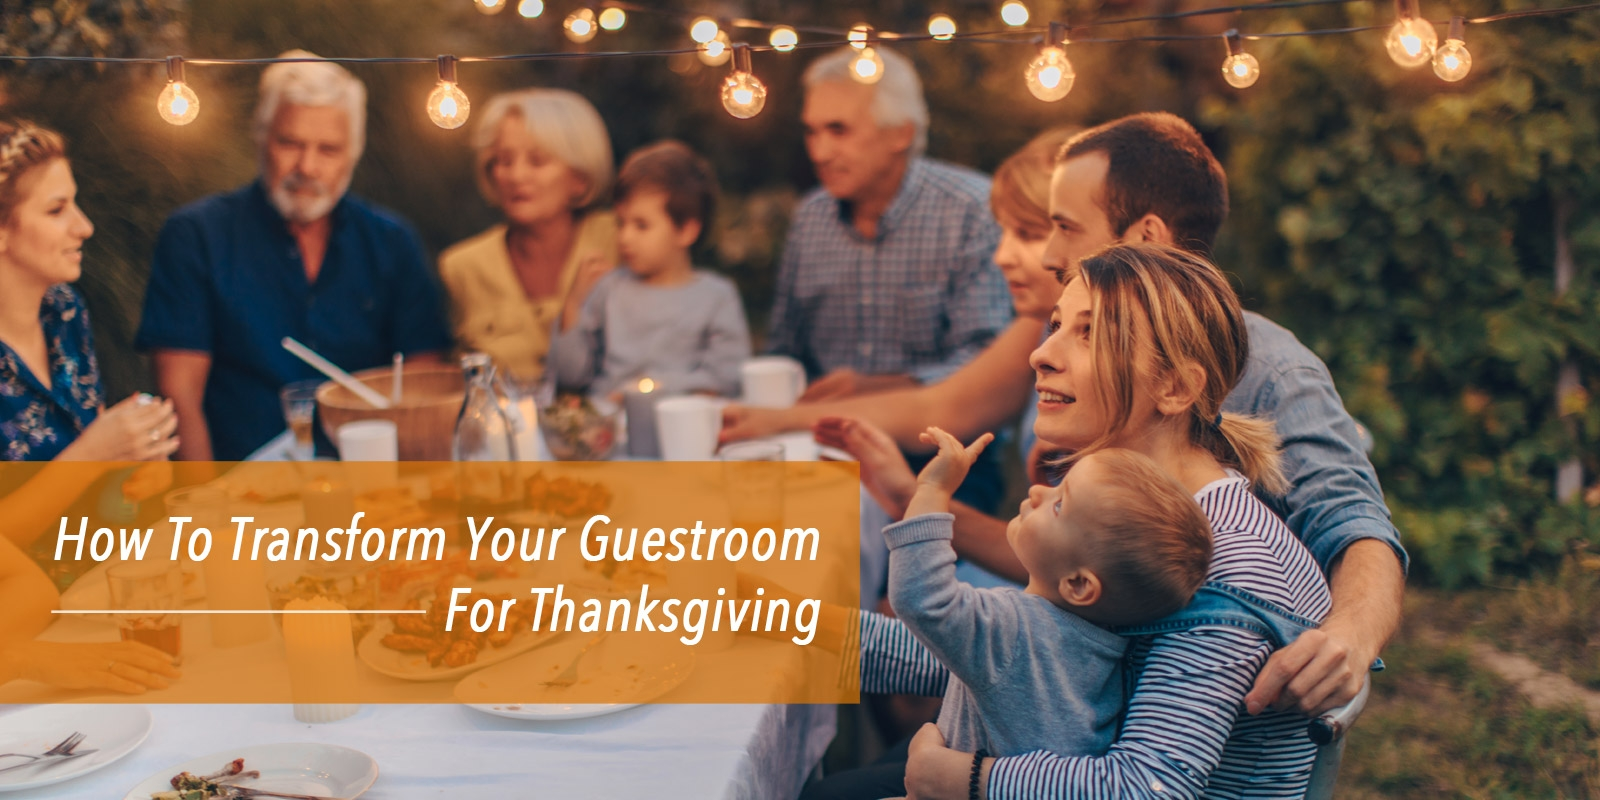 How To Transform Your Guestroom For Thanksgiving